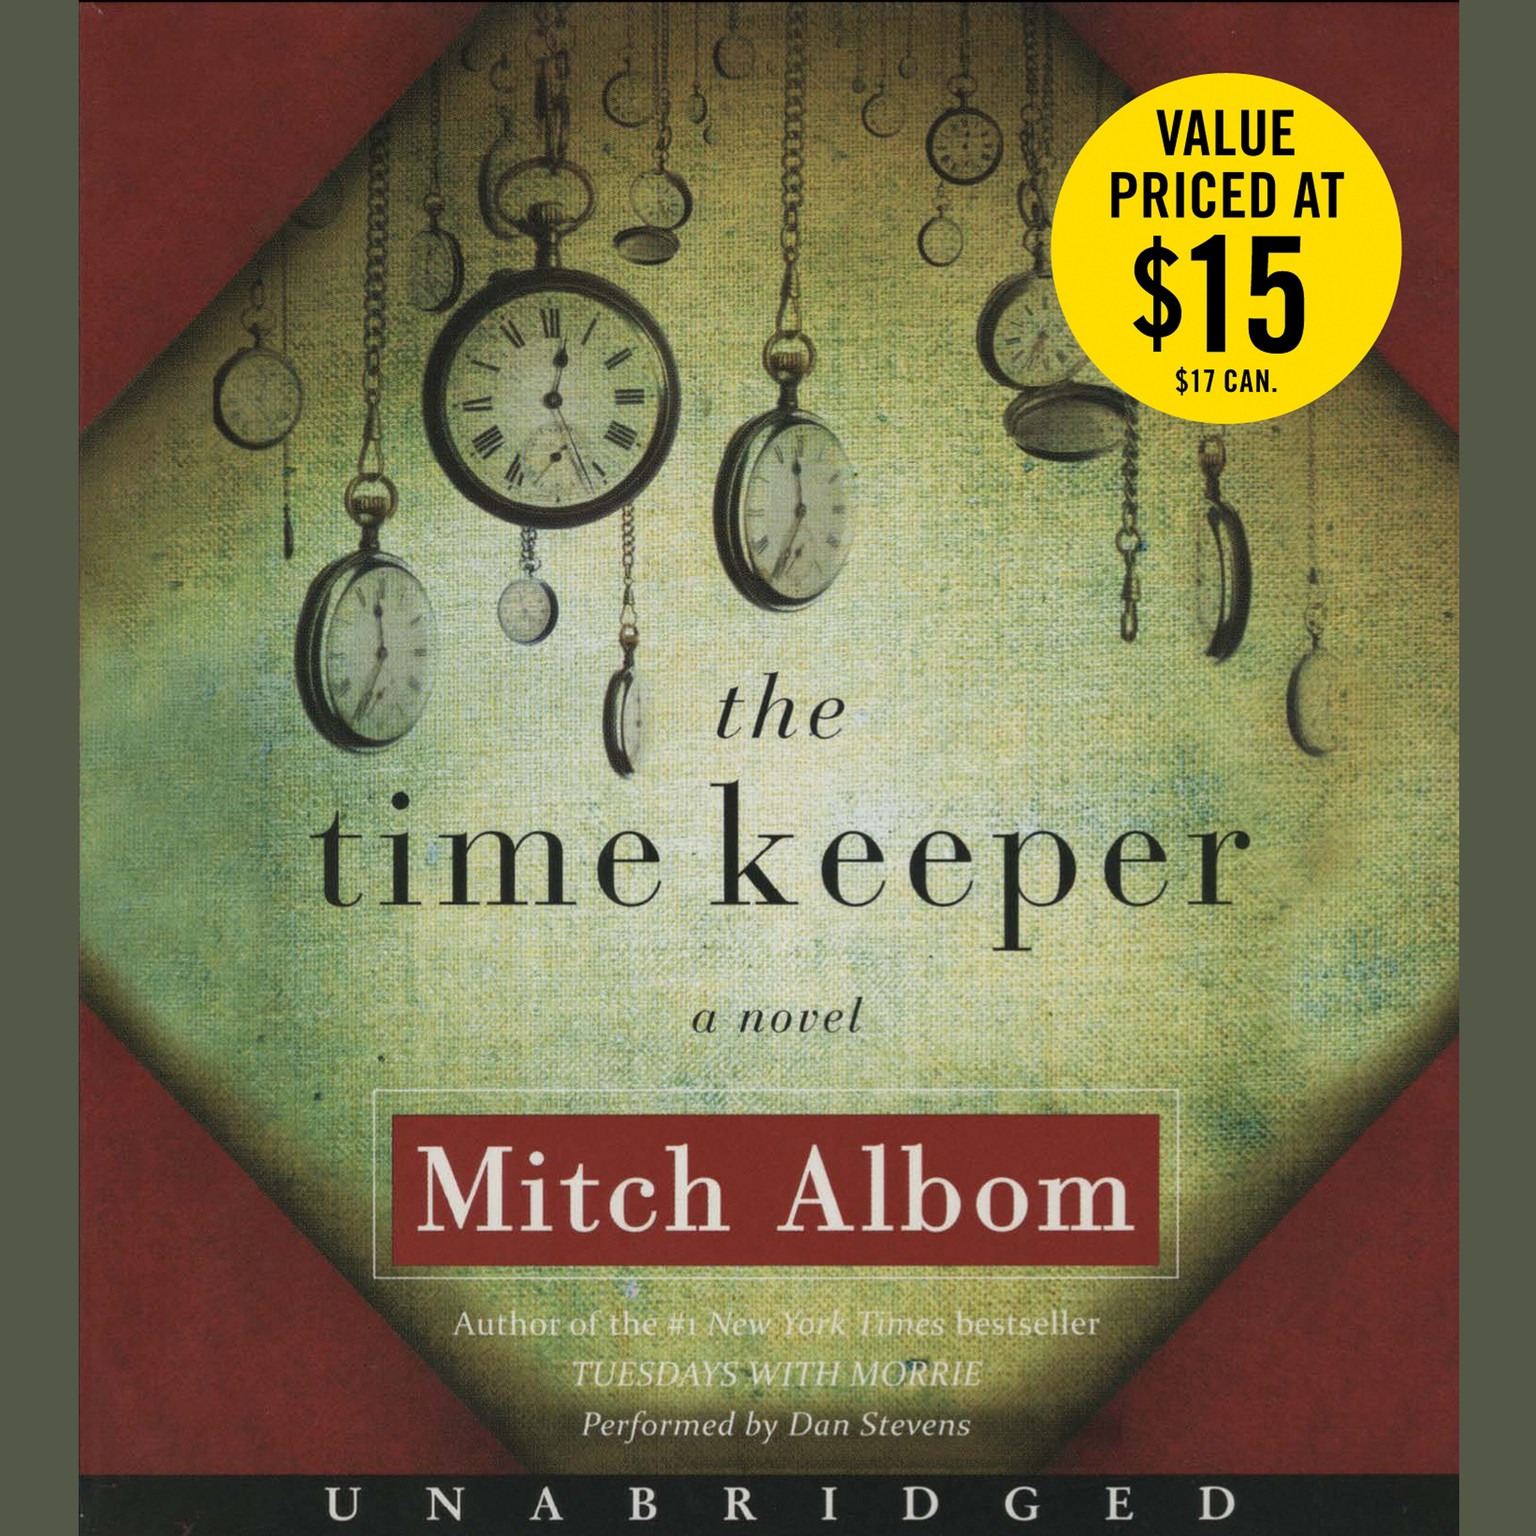 mitch albom analysis Morrie schwartz and mitch albom i never thought that there could be a piece of literature that could take such strong hold on my heart, especially for this length of time.